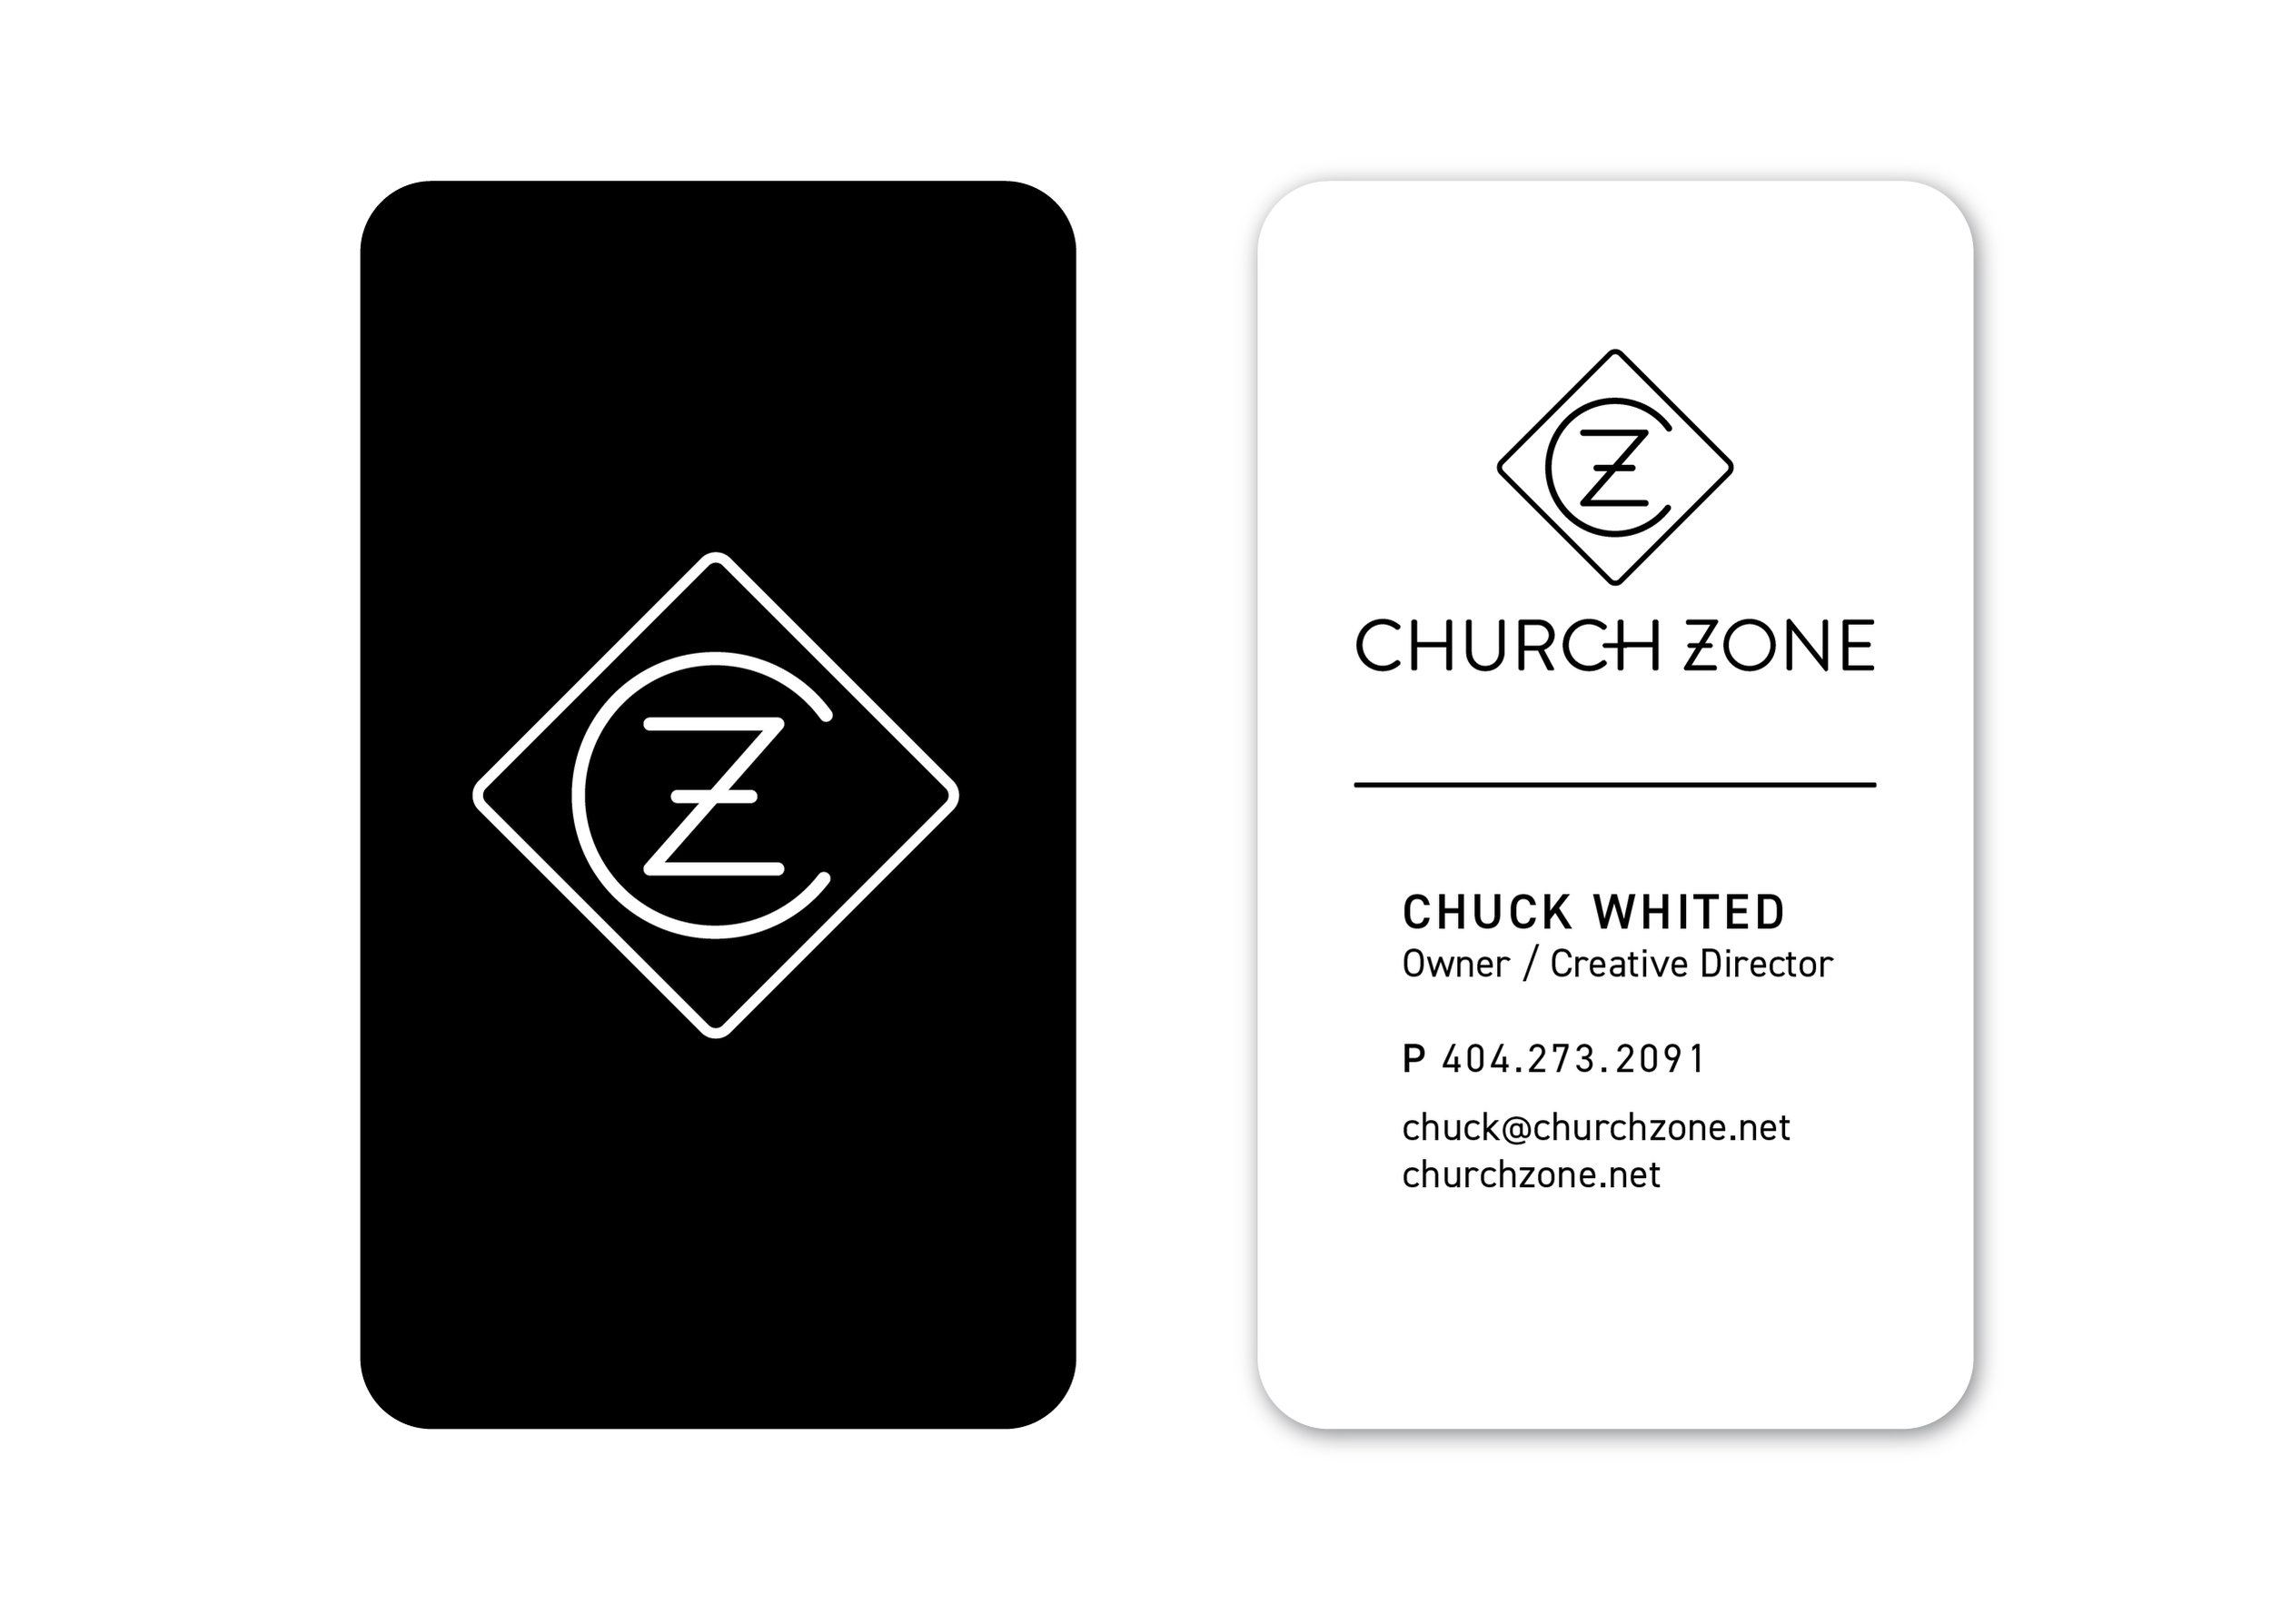 PLAY created a simple and modern logo mark. The business card designs pushed this aesthetic forward.